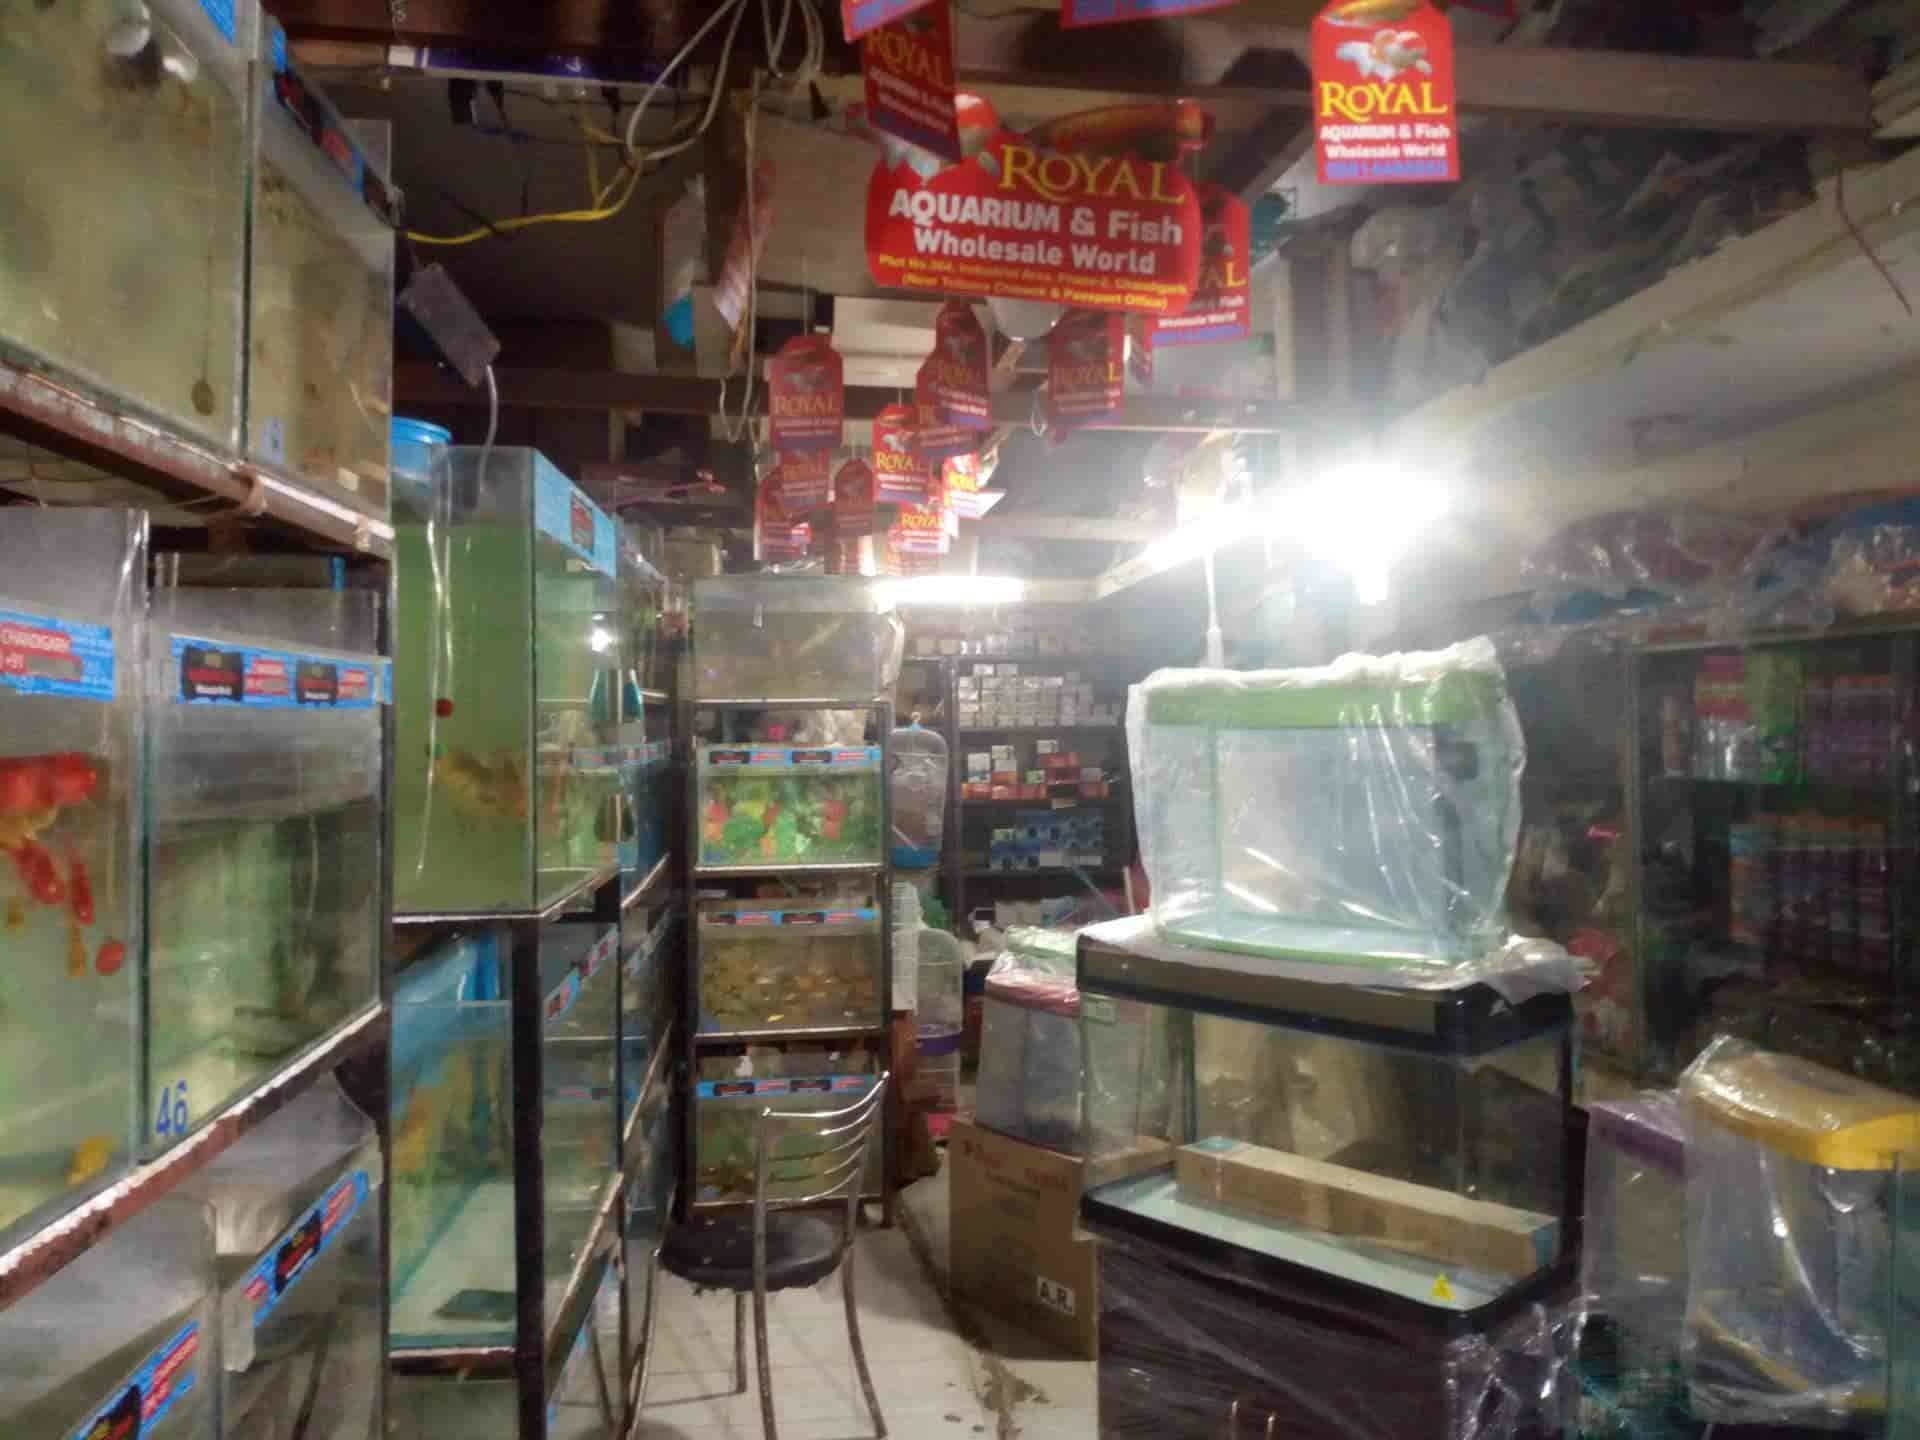 Royal Aquarium Fish Wholesale World Industrial Area Phase Ii Pet Shops In Chandigarh Justdial